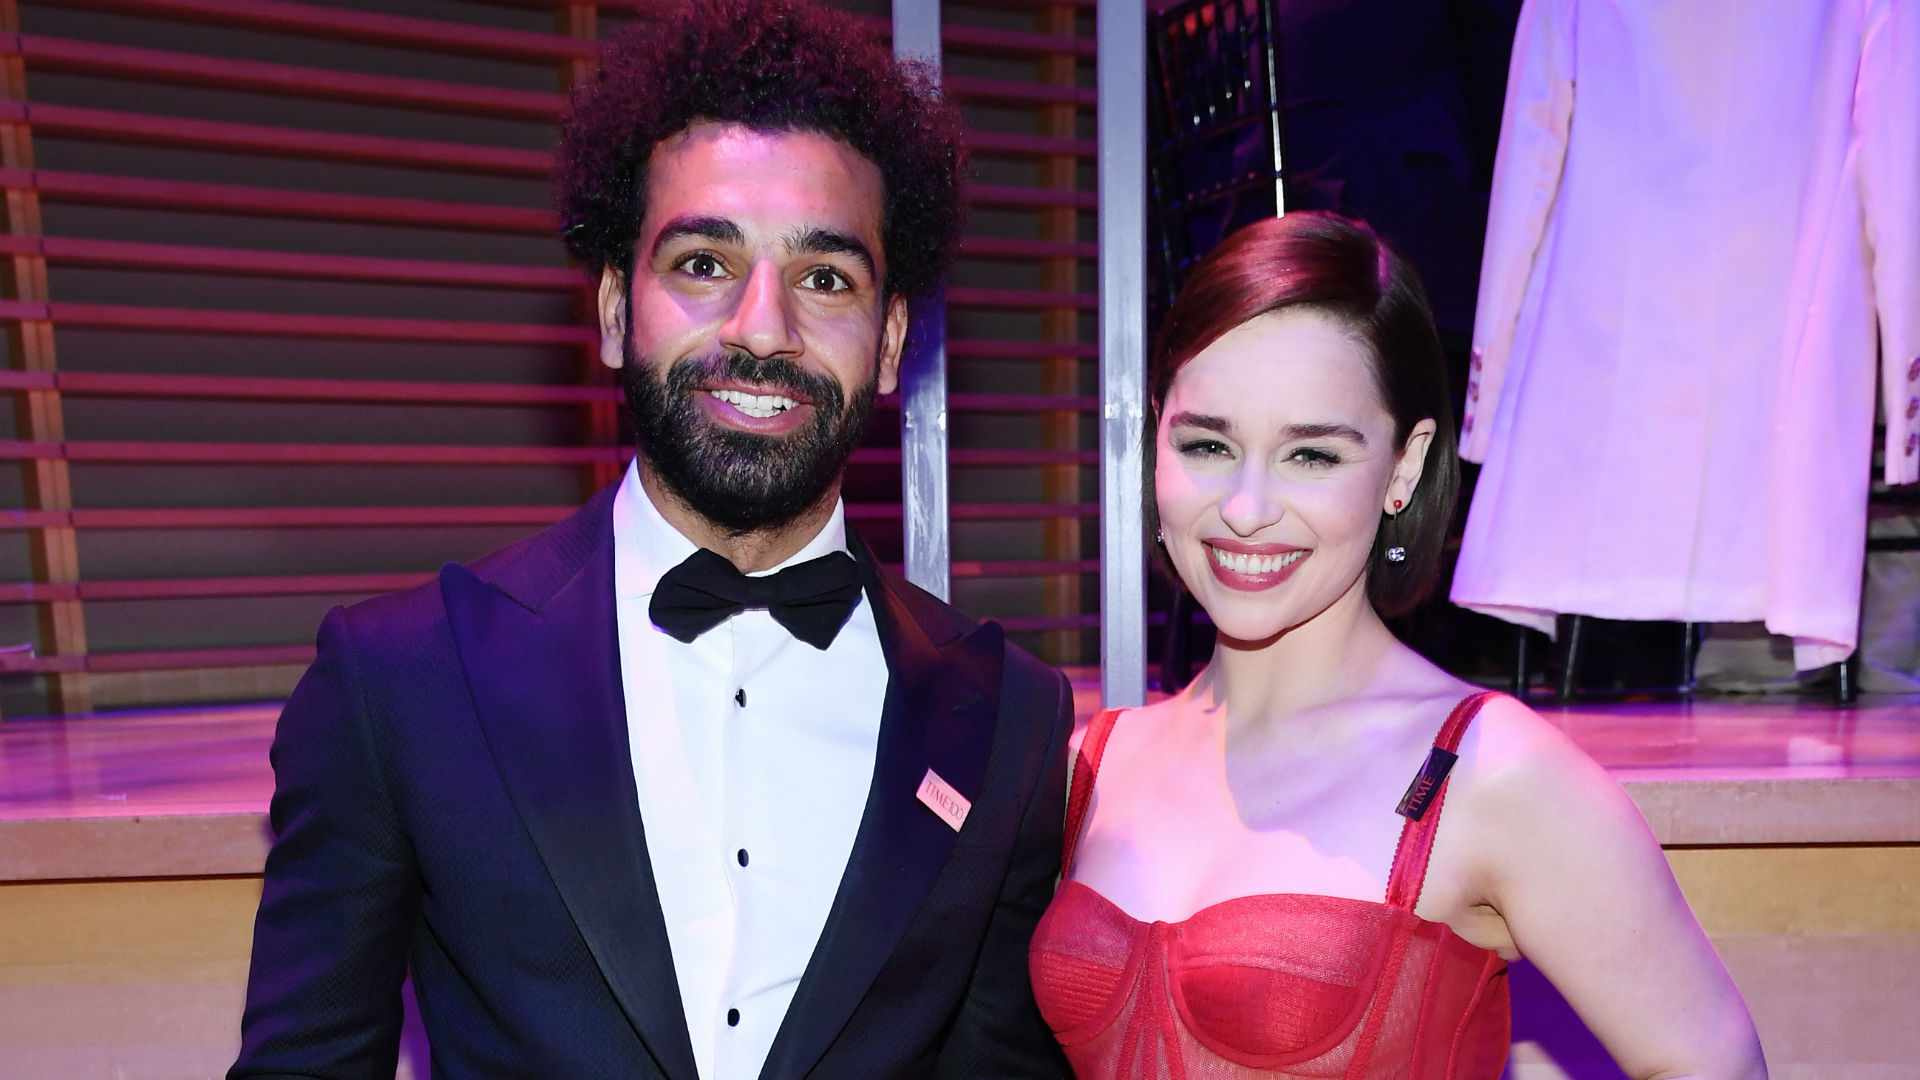 Klopp jealous of Salah meeting Game of Thrones star 'Mrs. Targaryen'